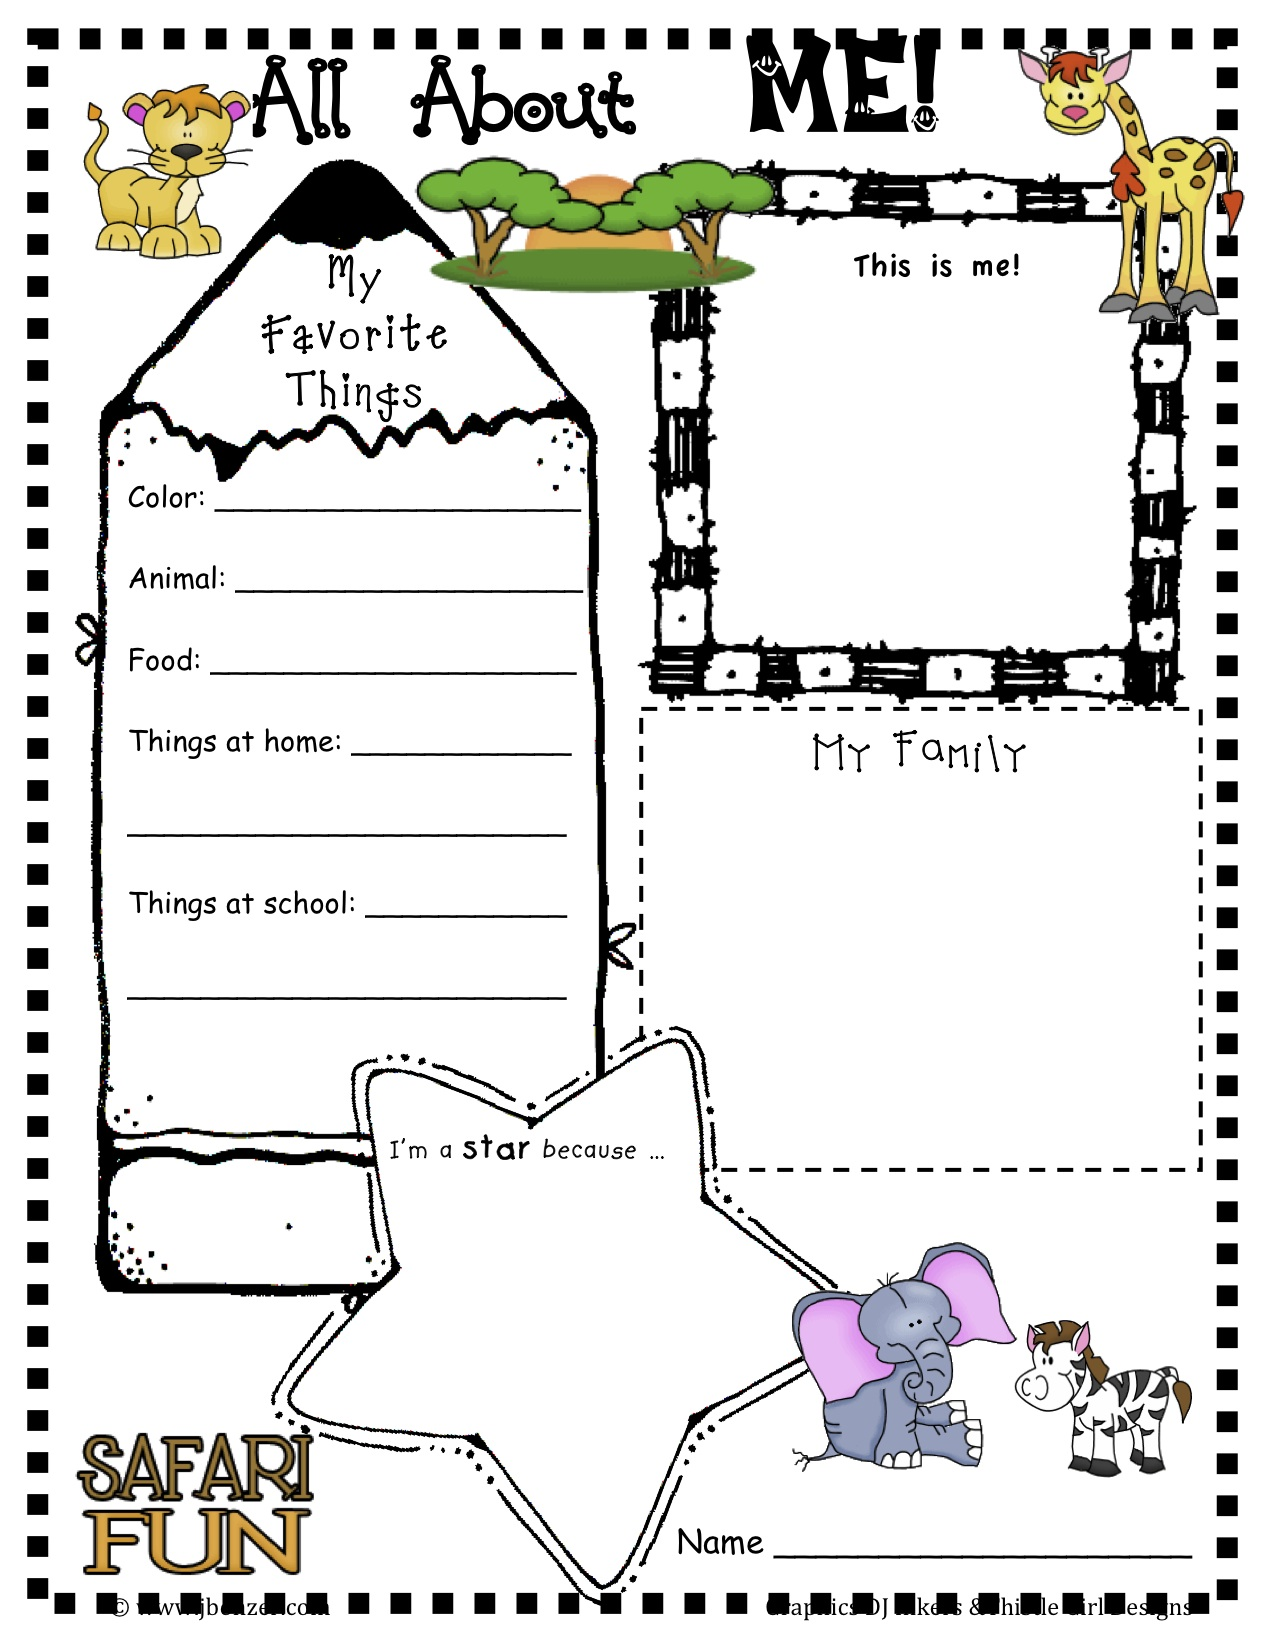 All About Me Back To School Worksheet For Prek